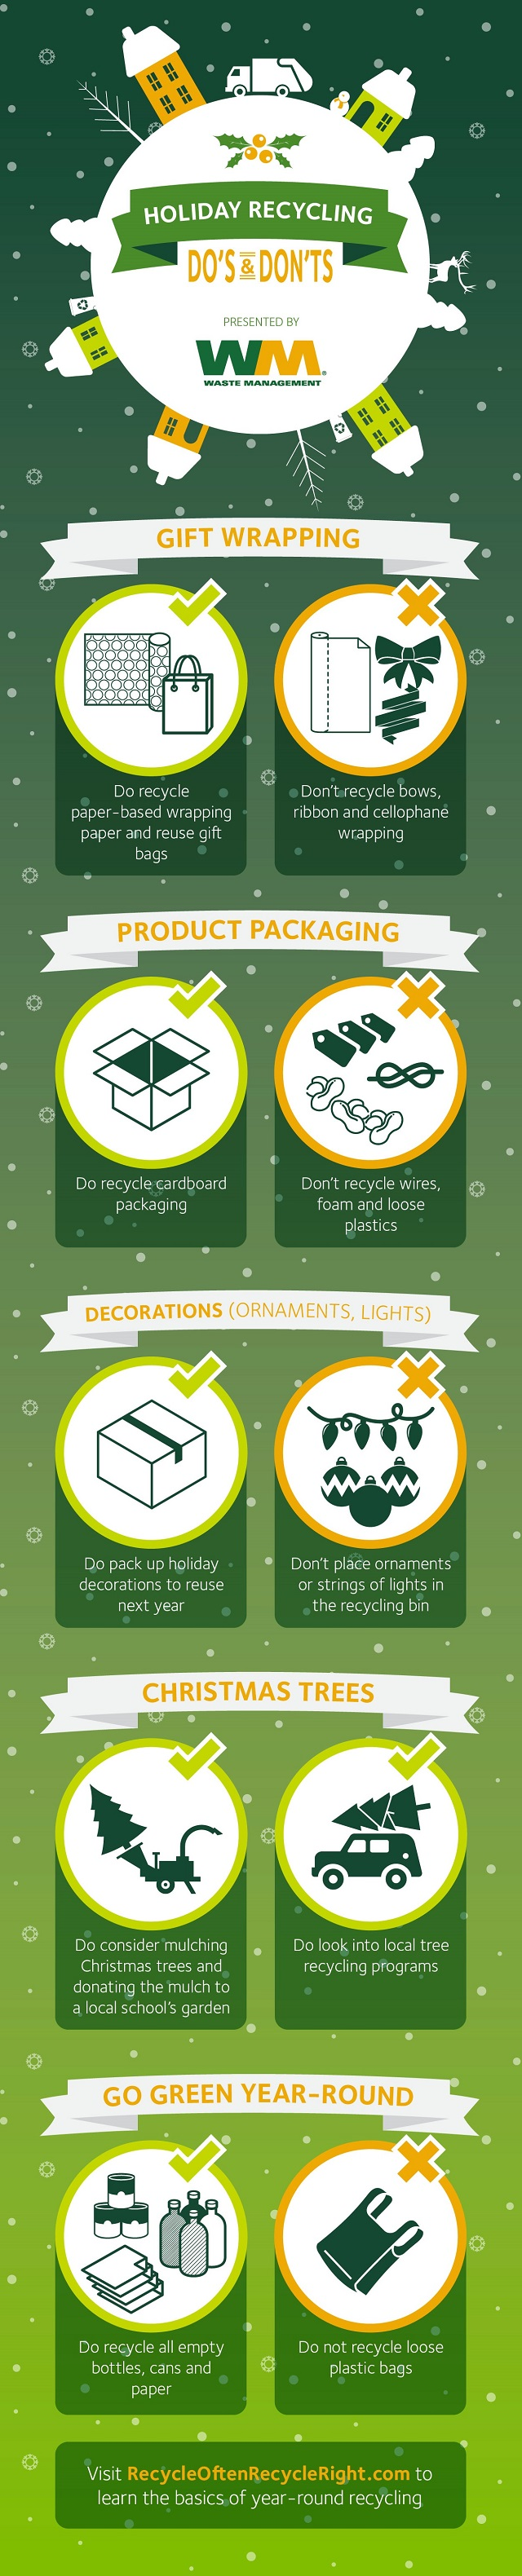 what can you recycle during the holidays?